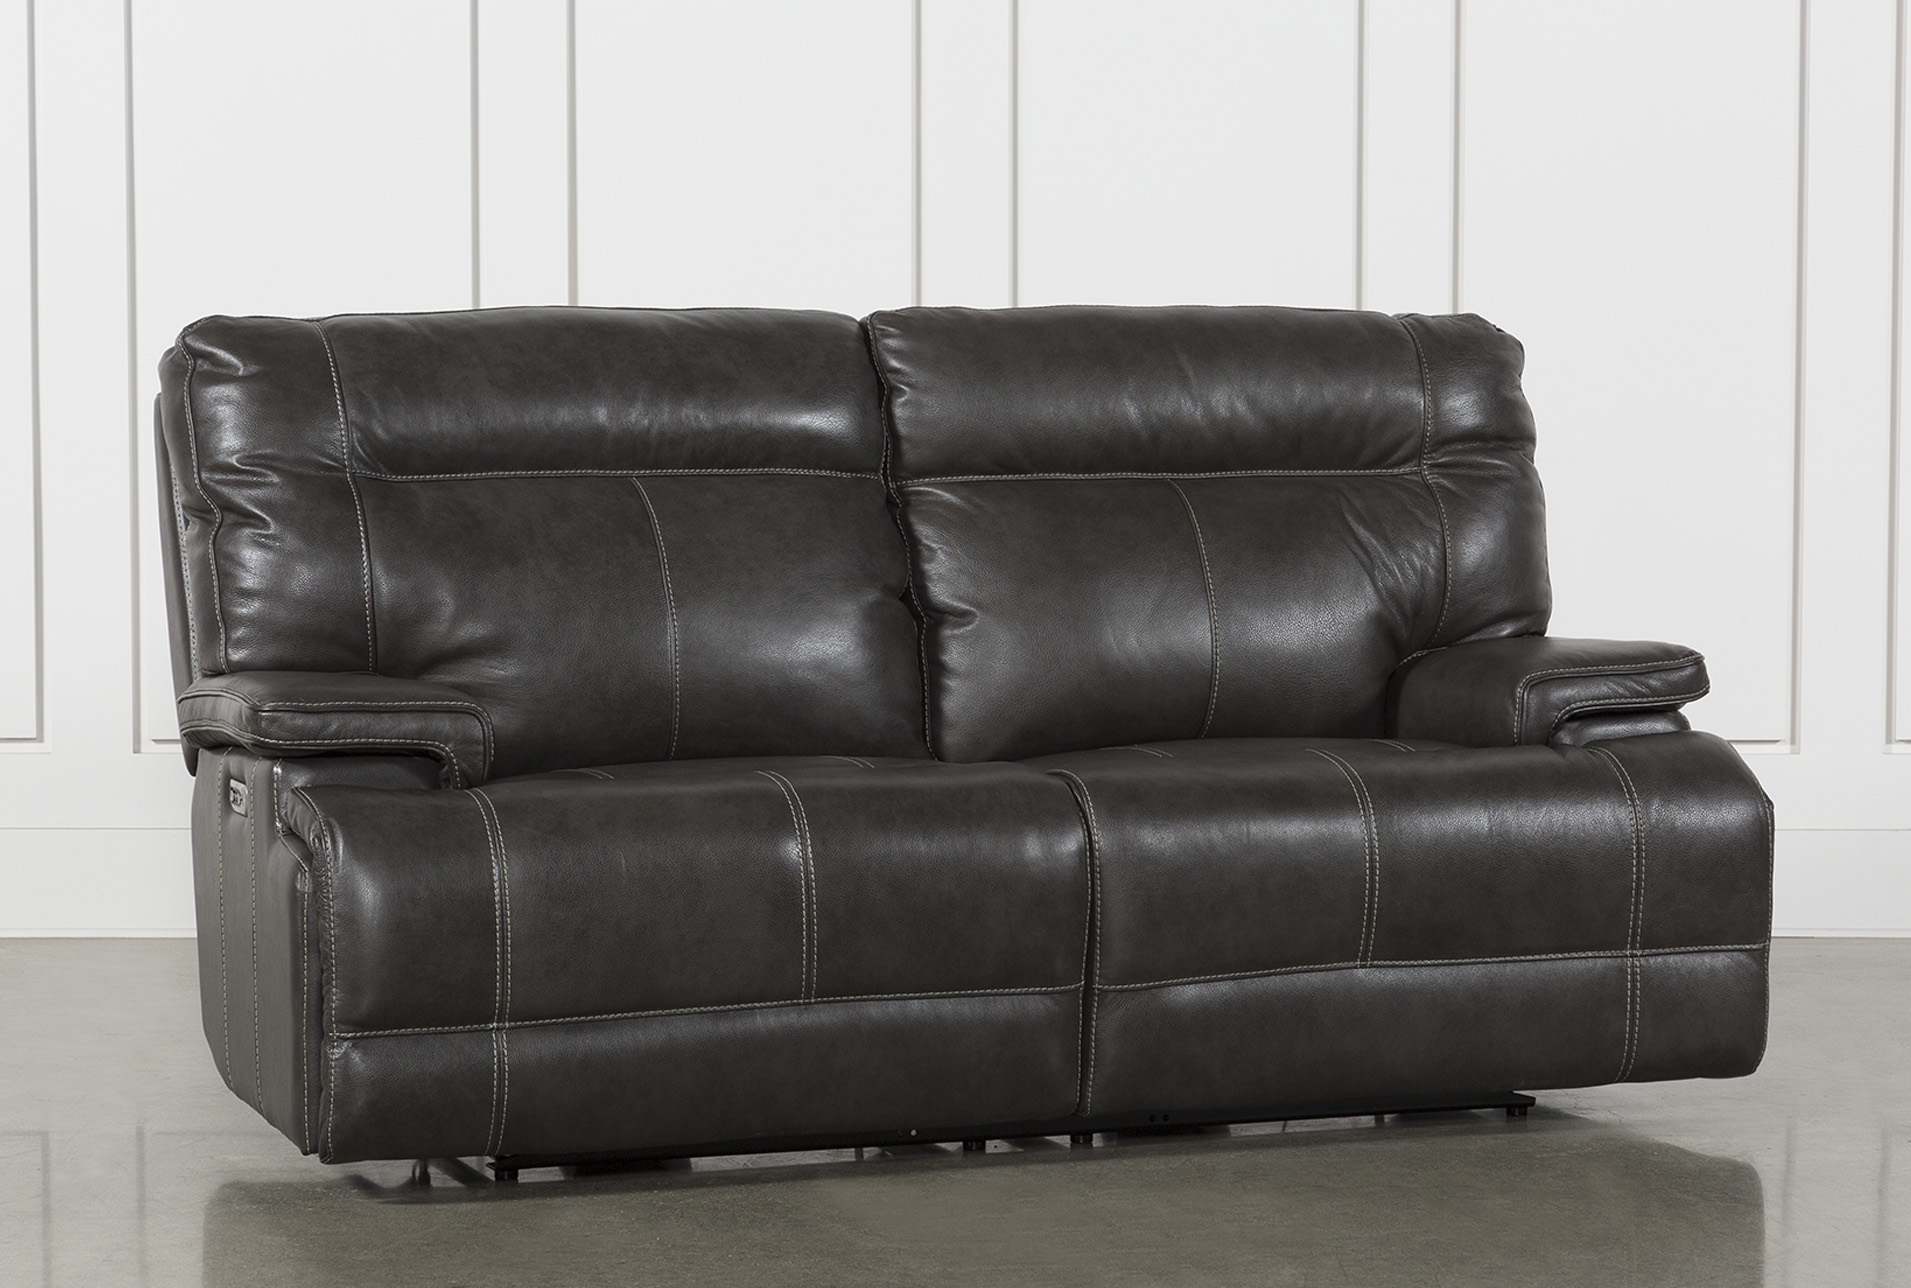 Marius Dark Grey Power Reclining Sofa With Power Headrest And Usb (Qty: 1)  Has Been Successfully Added To Your Cart.